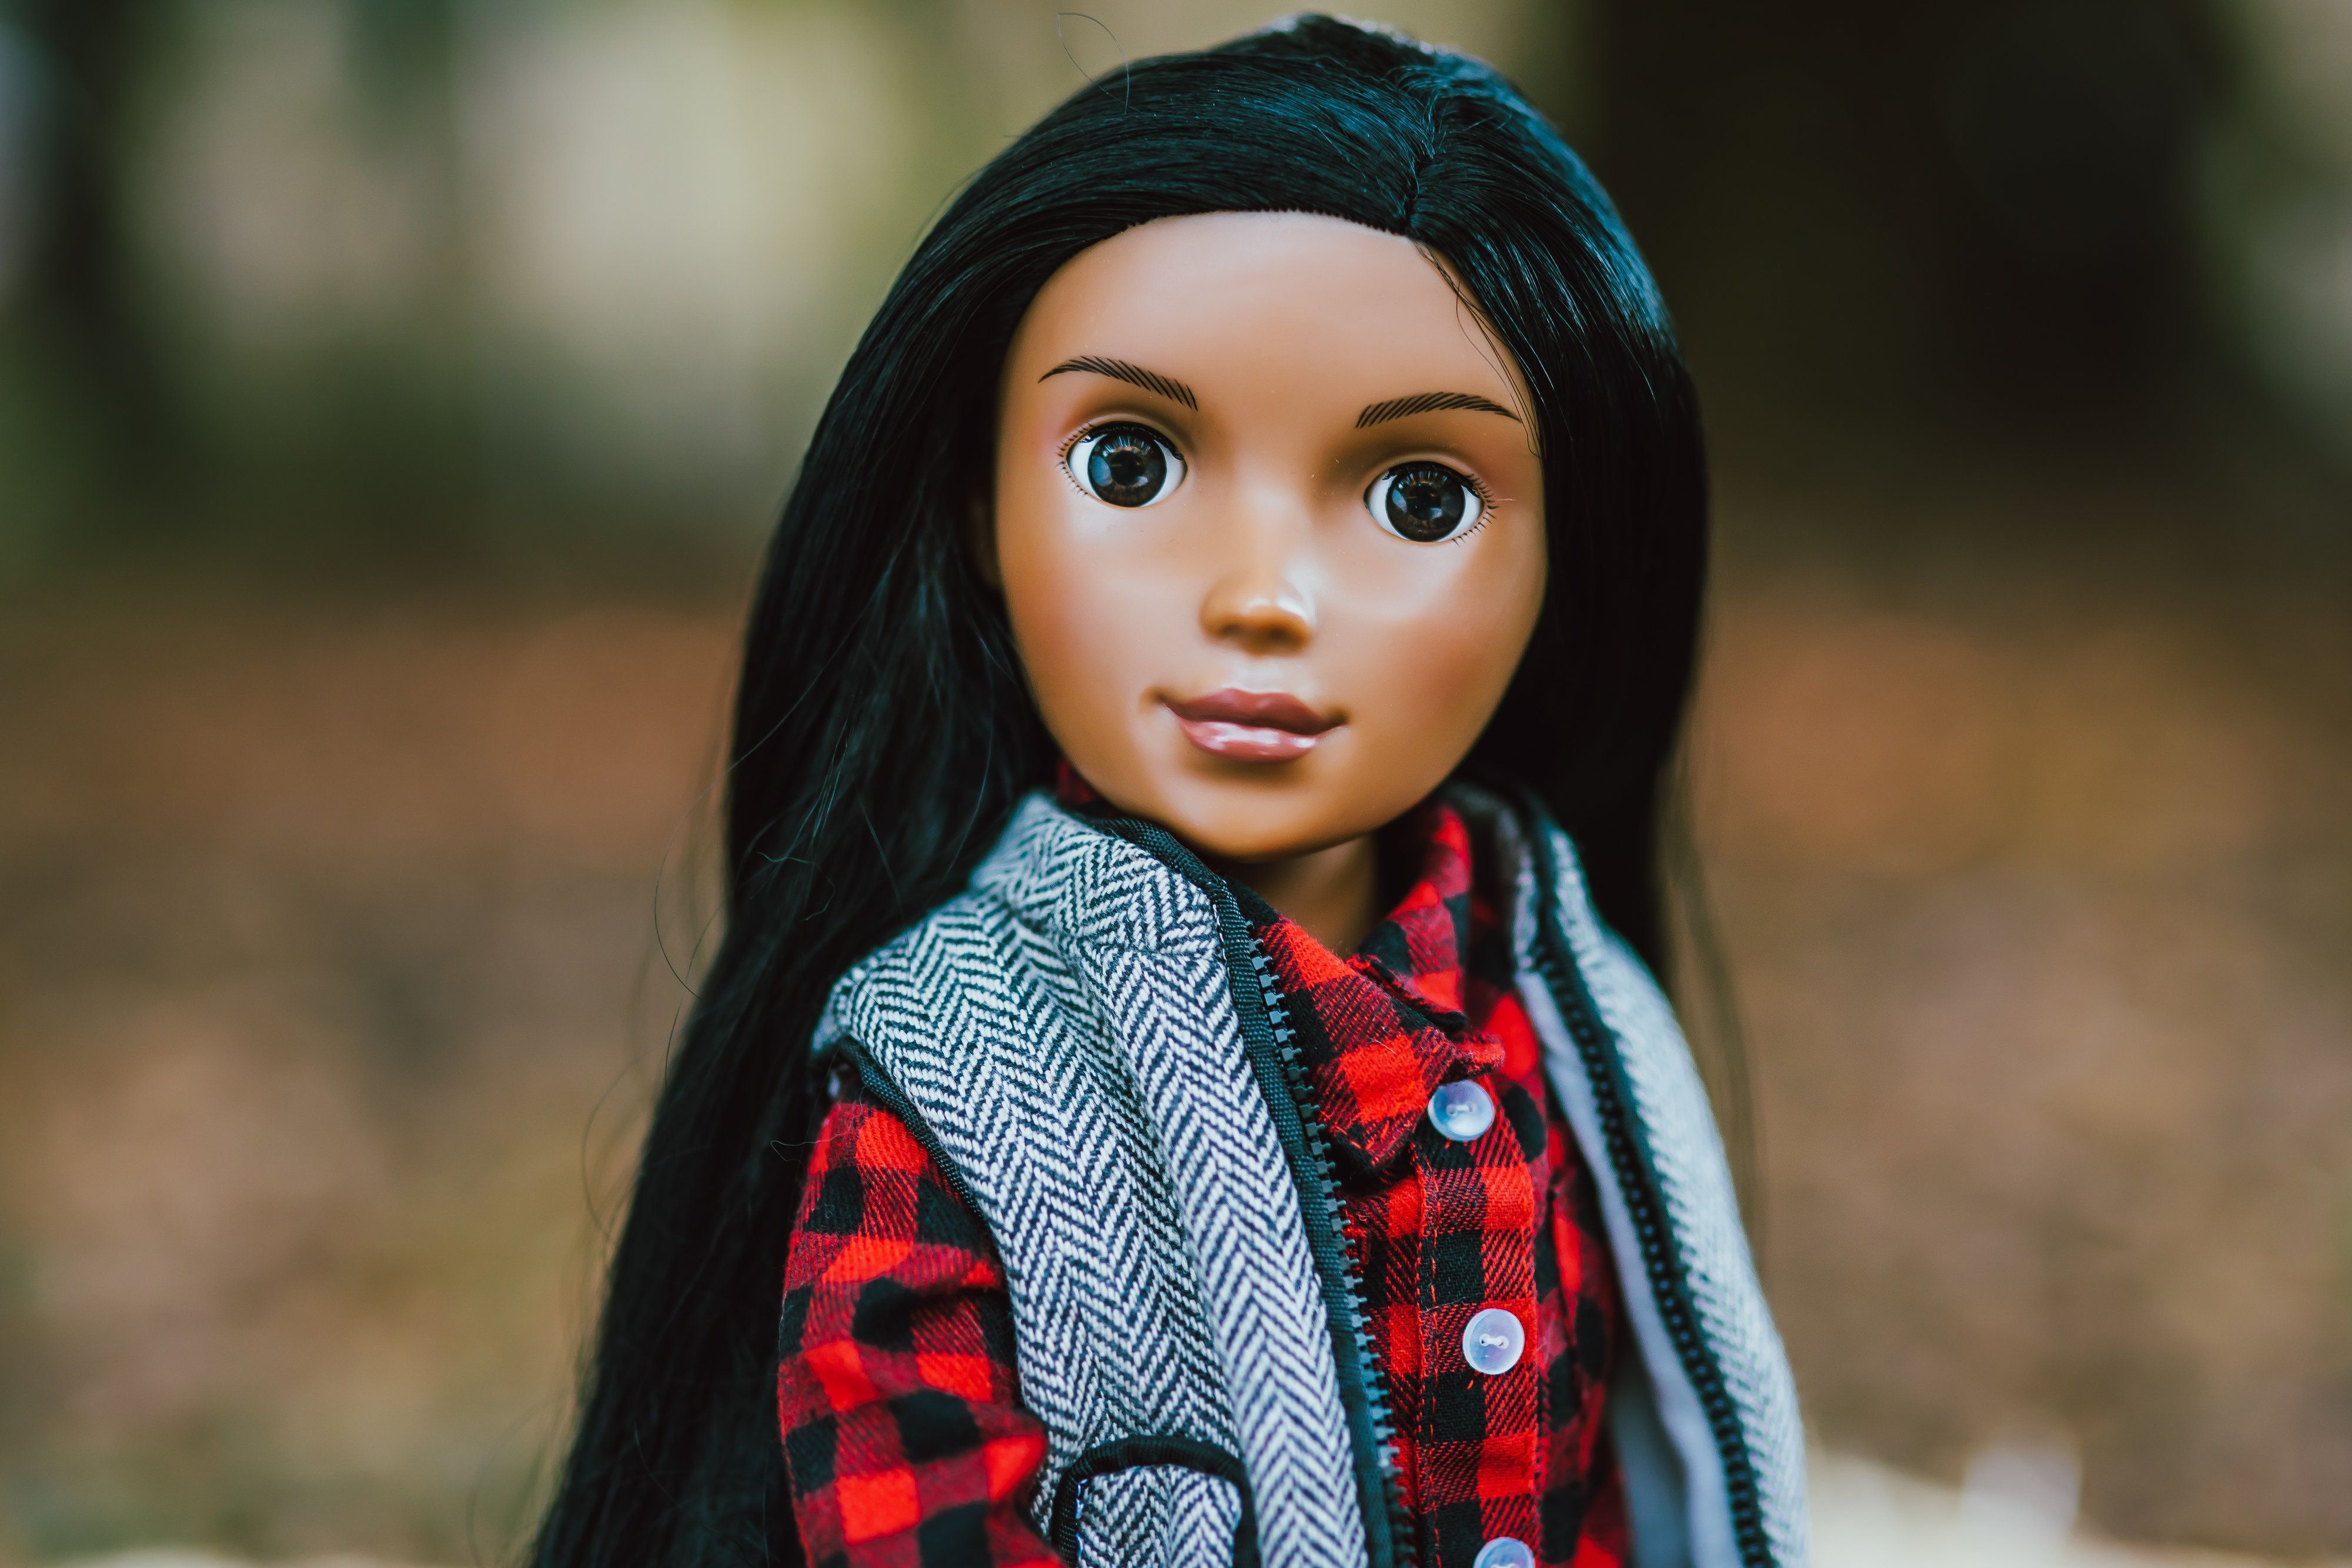 Neha Chauhan Woodward, the woman behind Girls & Co, created an Indian-American doll named Anjali. Woodward, who is also I